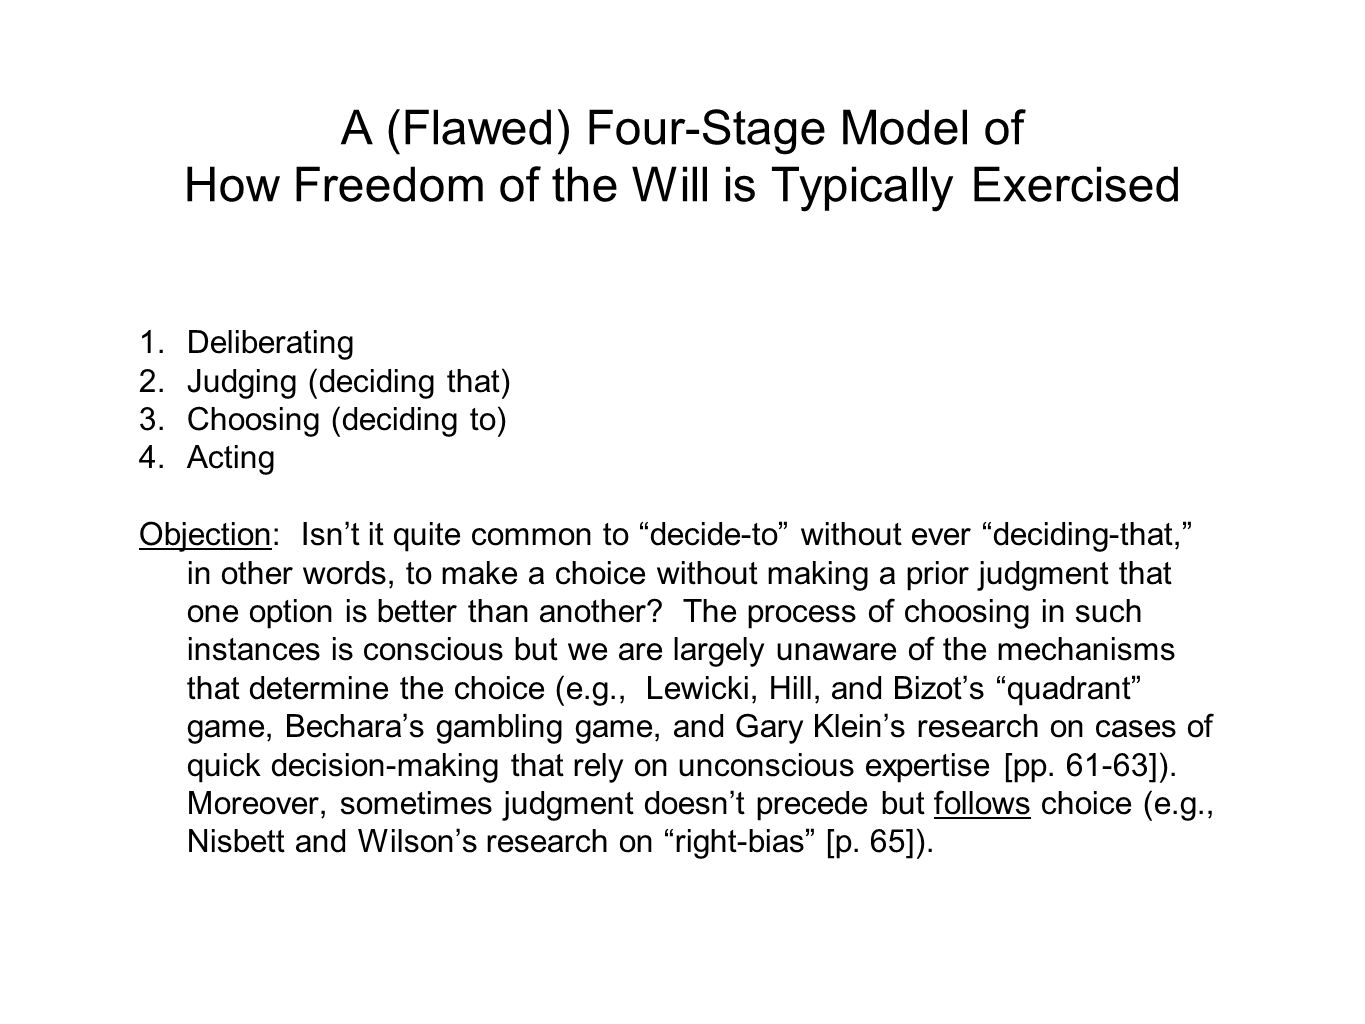 A (Flawed) Four-Stage Model of How Freedom of the Will is Typically Exercised